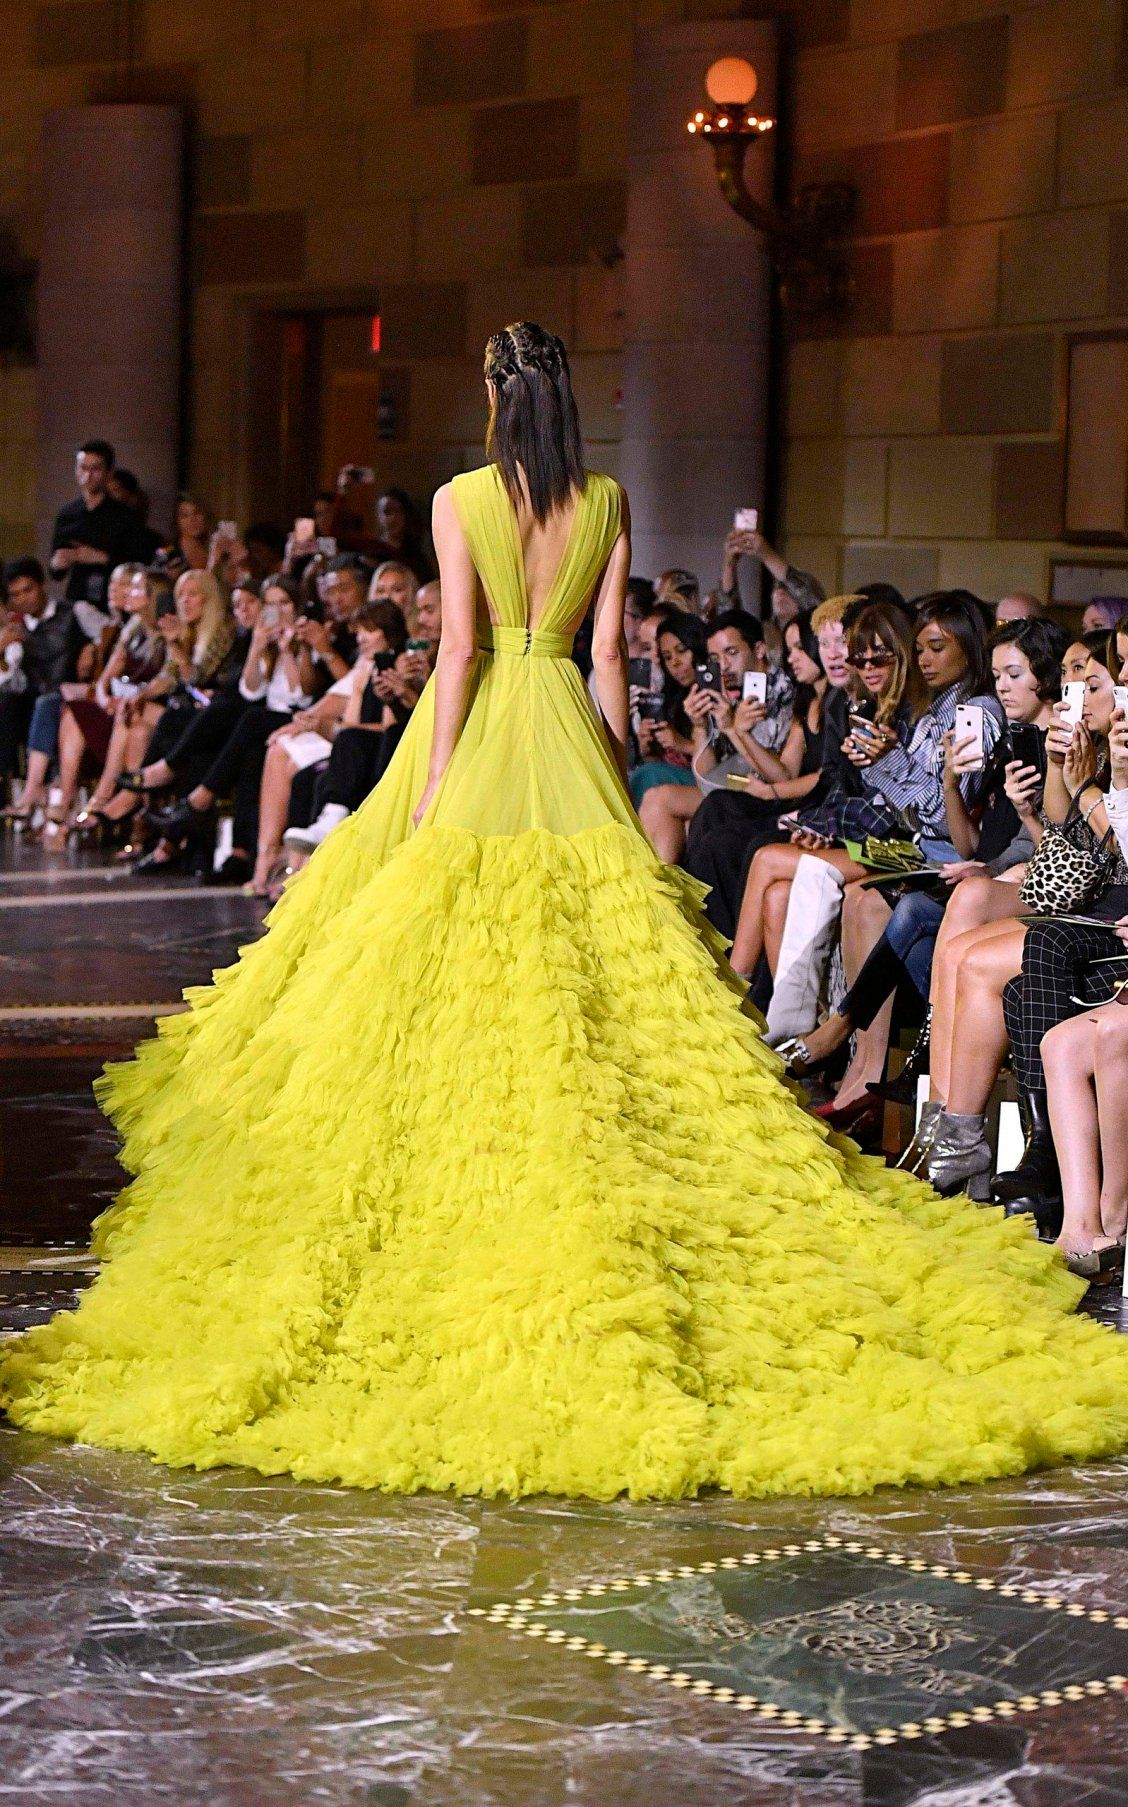 Tiered Tulle Gown By Christian Siriano Ss19 Fashion Show Dresses Yellow Prom Dress Long High Fashion Outfits